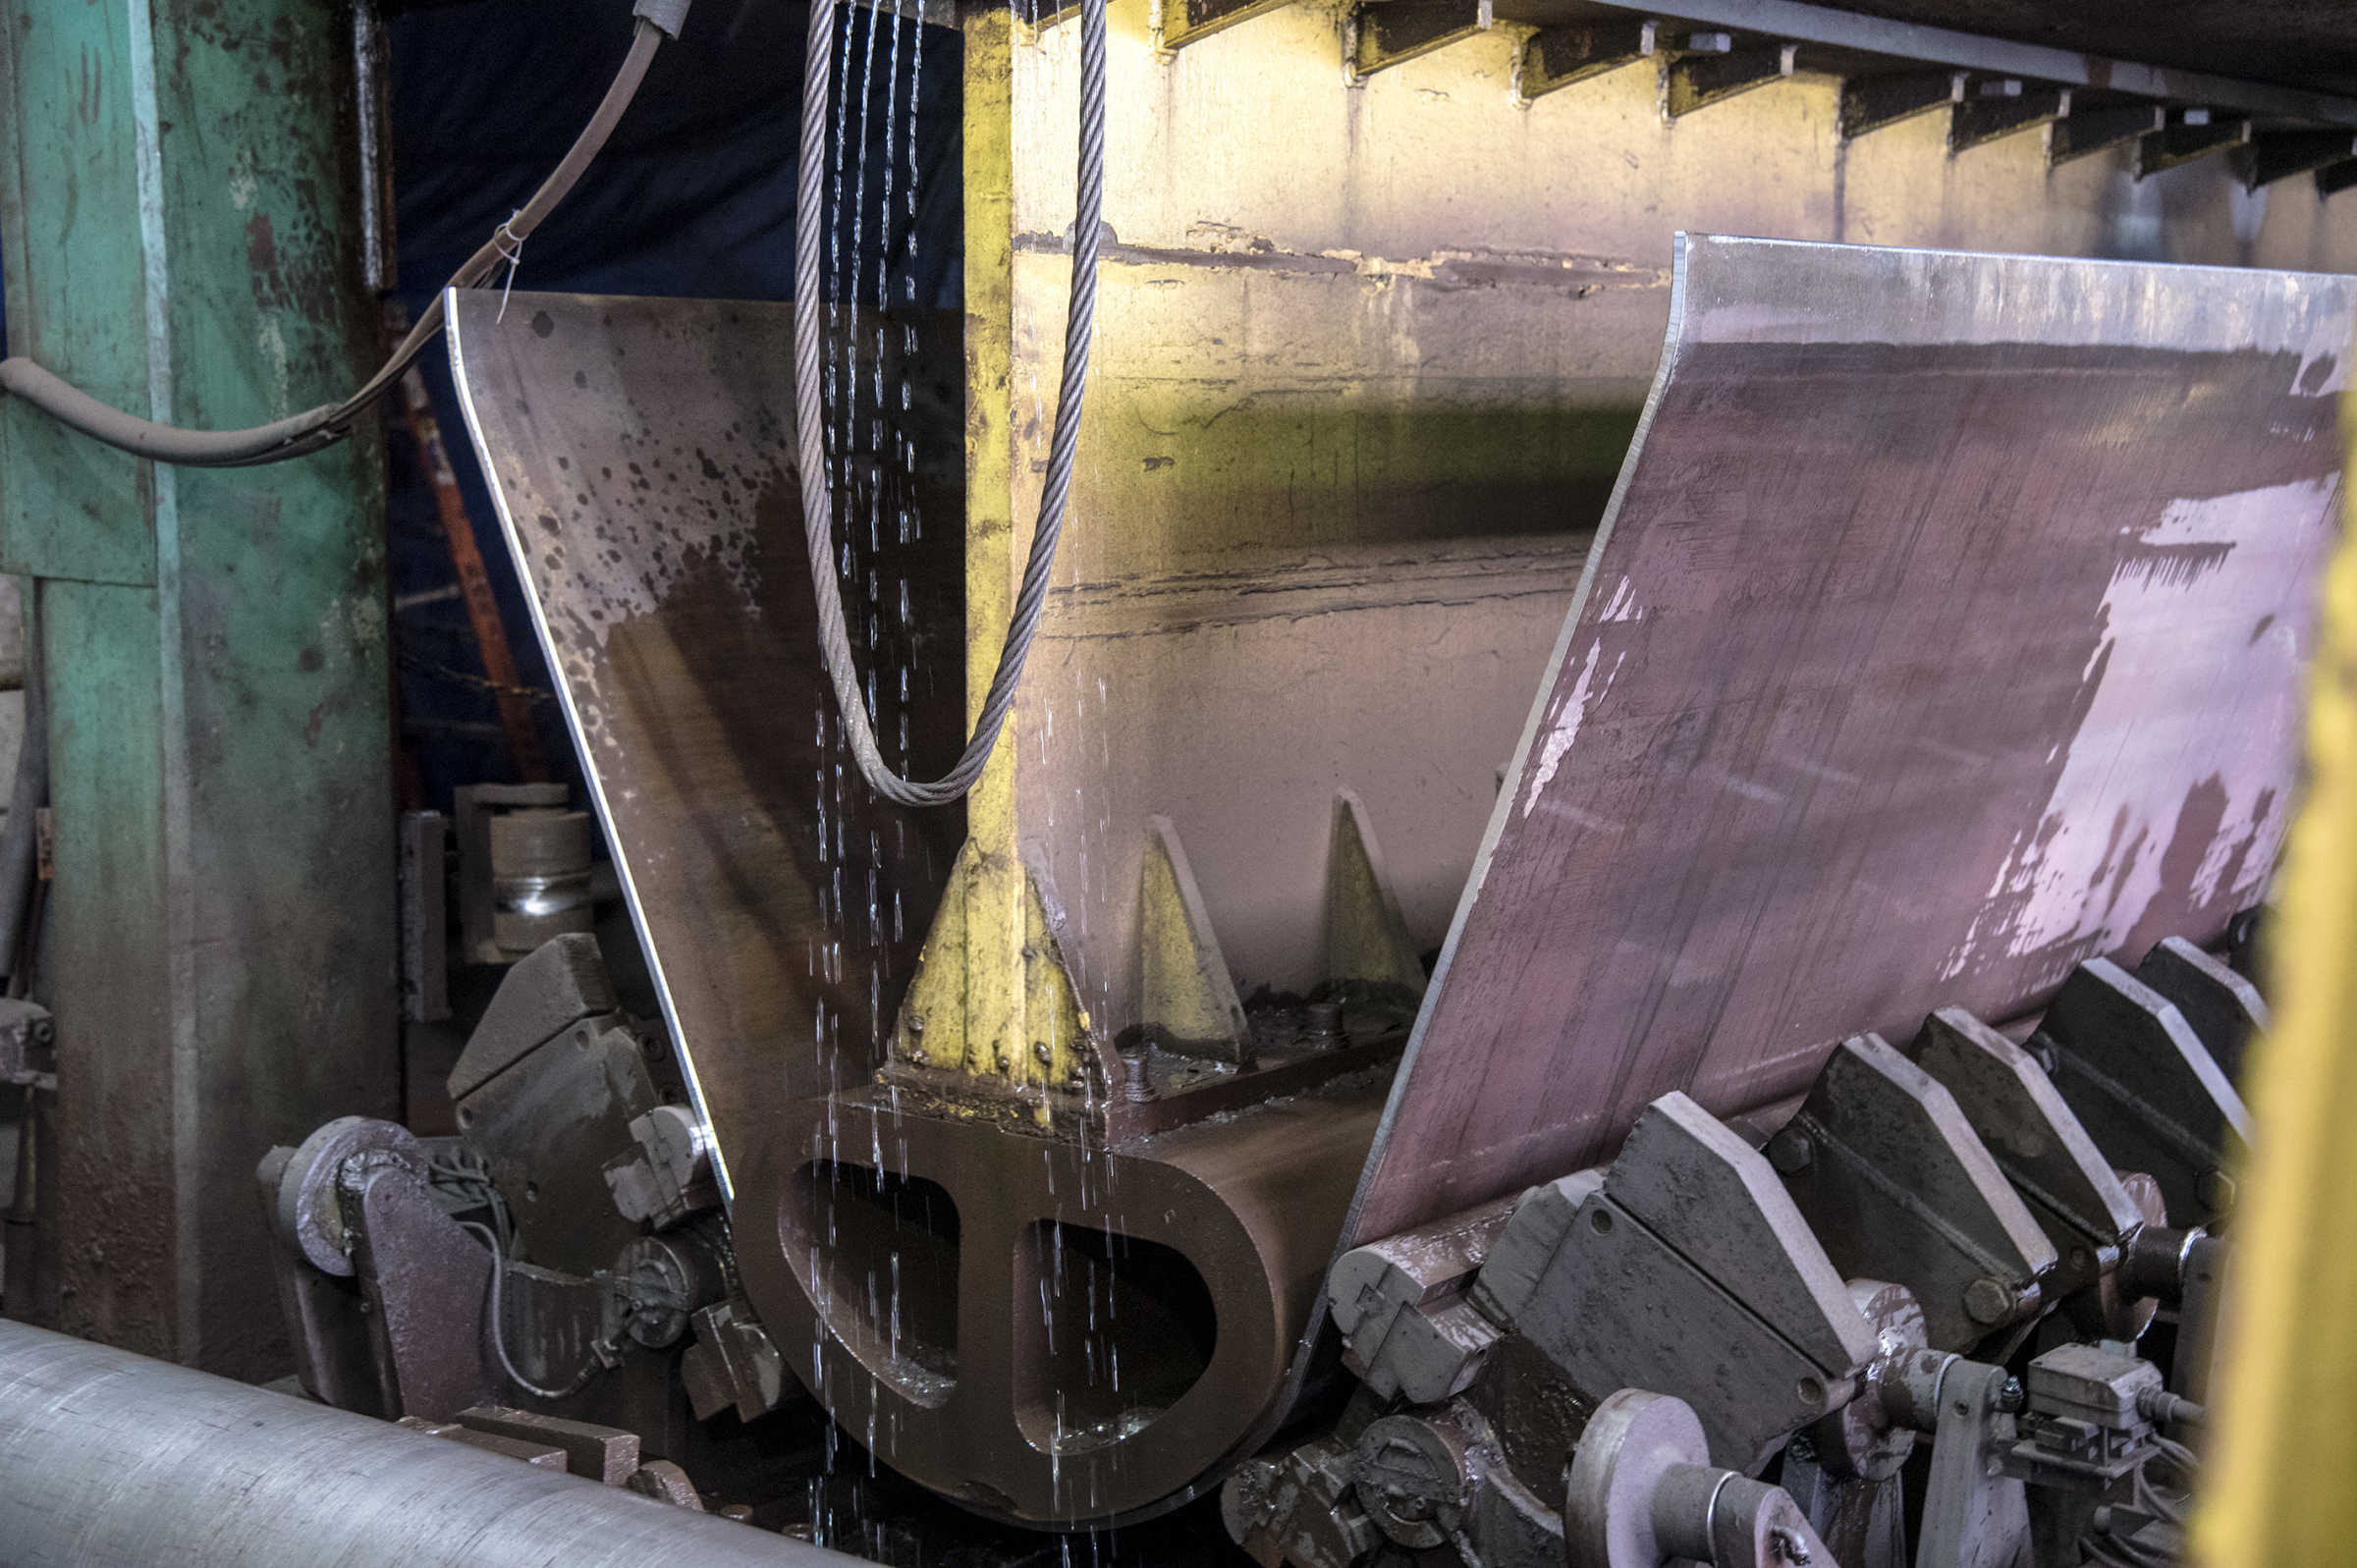 A 20,000 ton U-press at the Dura-Bond Industries steel pipe fabricating factory in Steelton, Pa,. begins the process of shaping a 6-ton steel plate into a circular 42-inch pipe.  The company, started in 1960, supplies coated steel pipes to oil and gas industry underground pipelines.